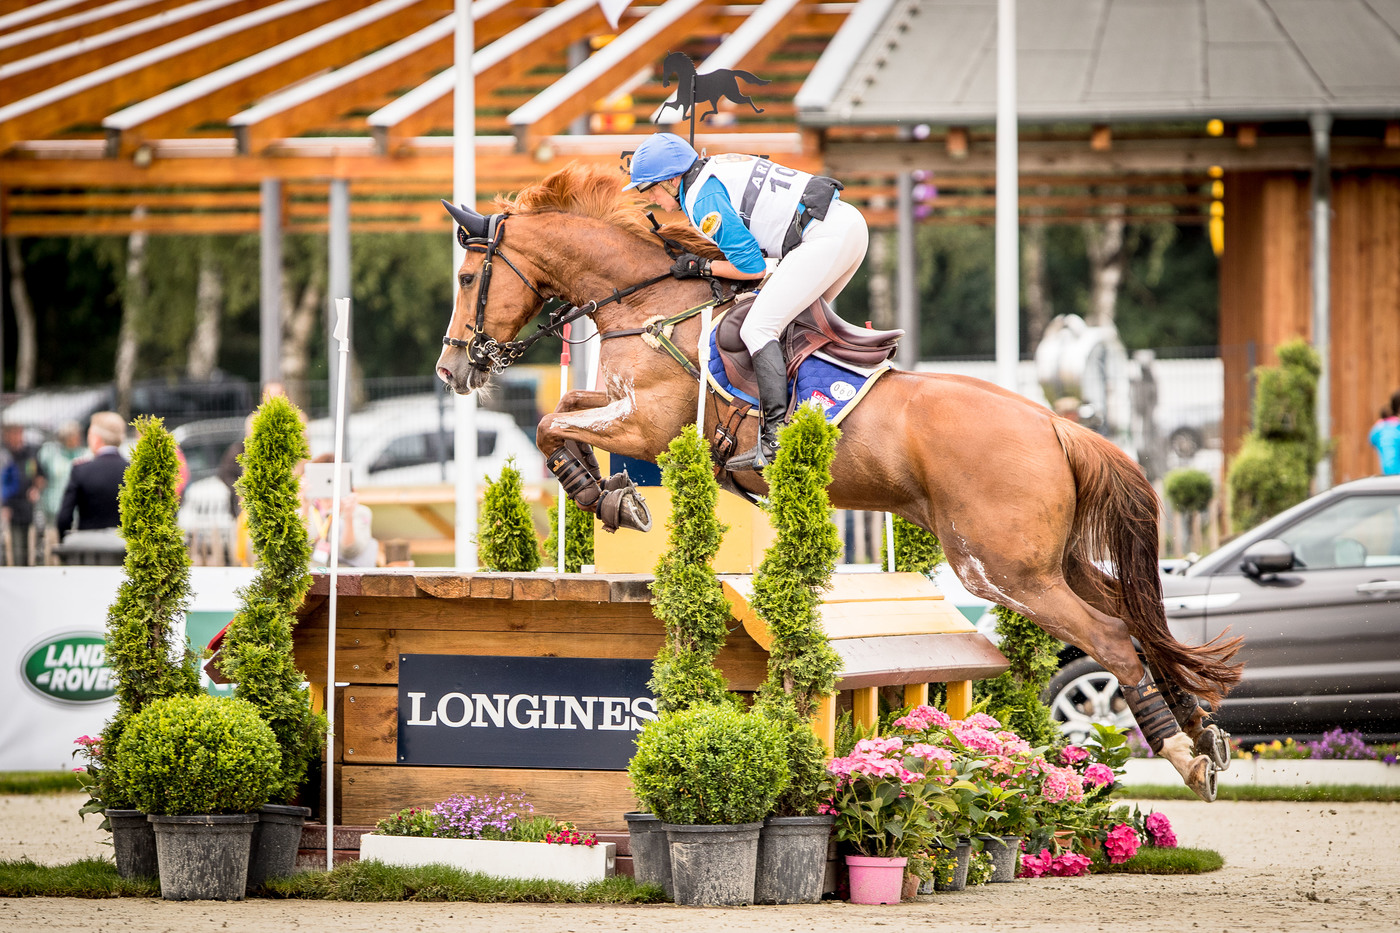 Longines Eventing Event: Swiss watch brand Longines becomes Title Partner of the  2019 Longines FEI Eventing European Championships 1